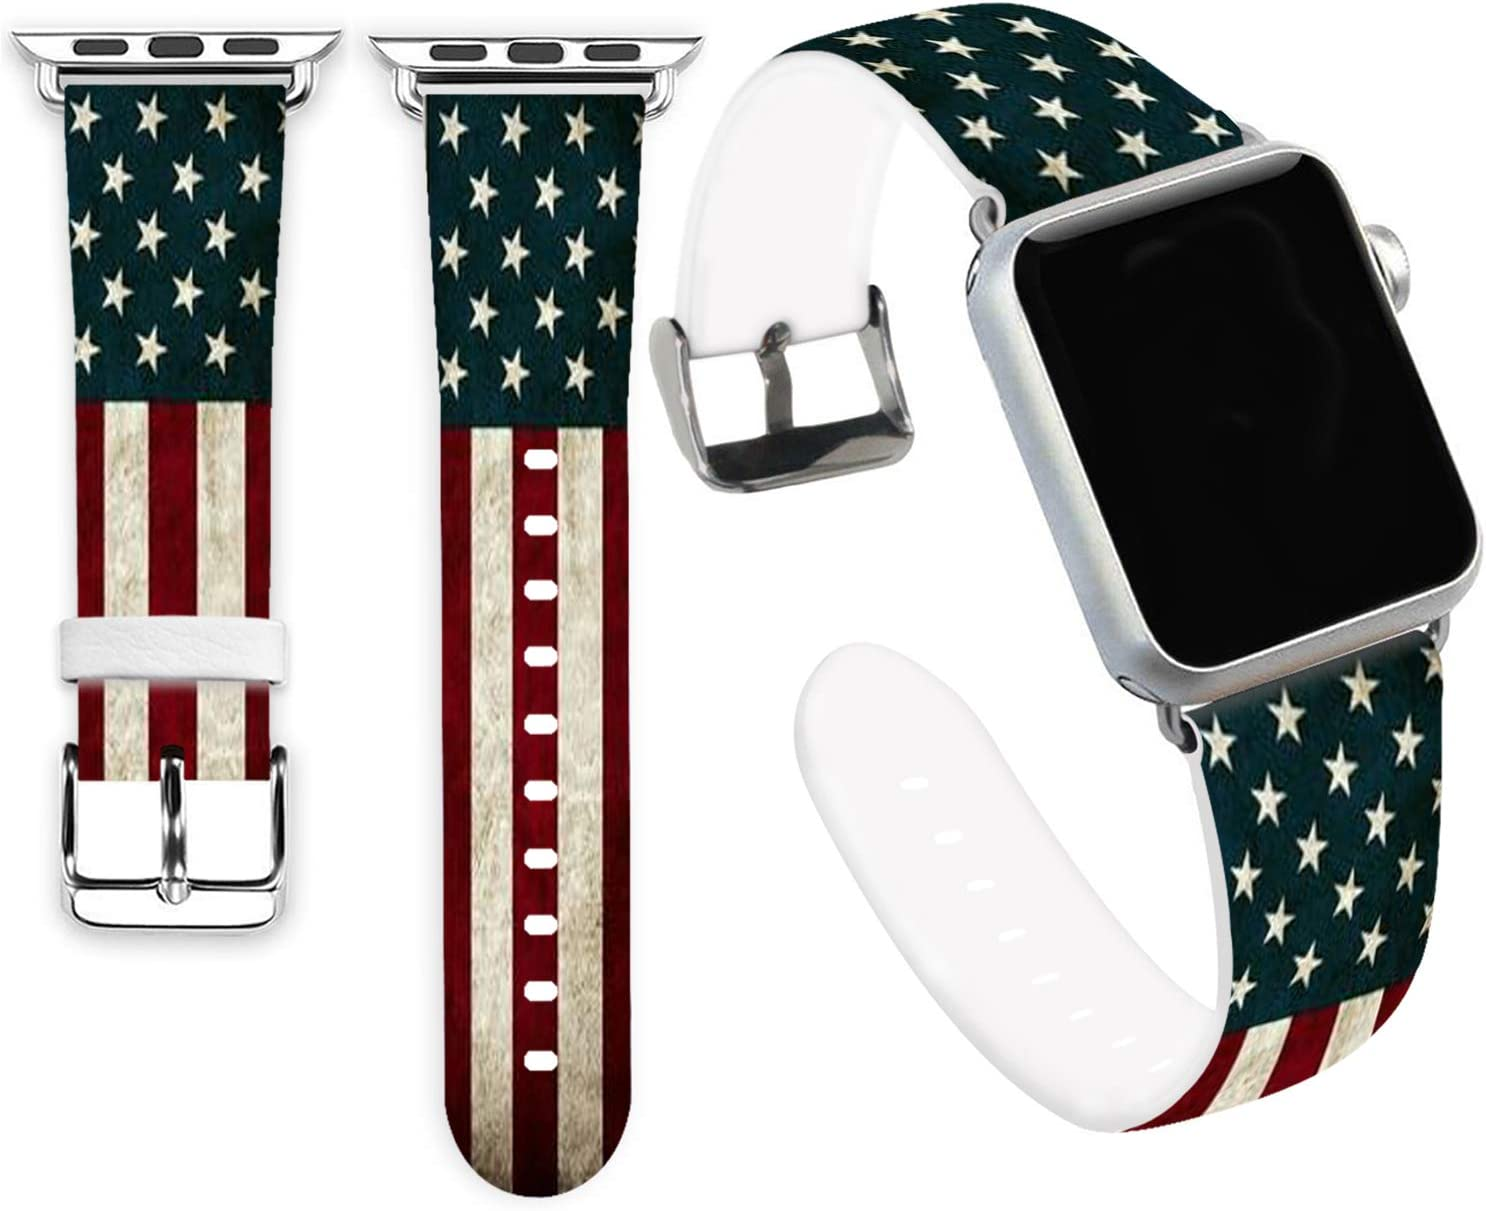 Flag Bands for Apple Watch 42mm,Jolook Soft Leather Sport Style Replacement iWatch Band Strap for iWatch 44mm/42mmSeries 5,4,3,2,1 - American Flag